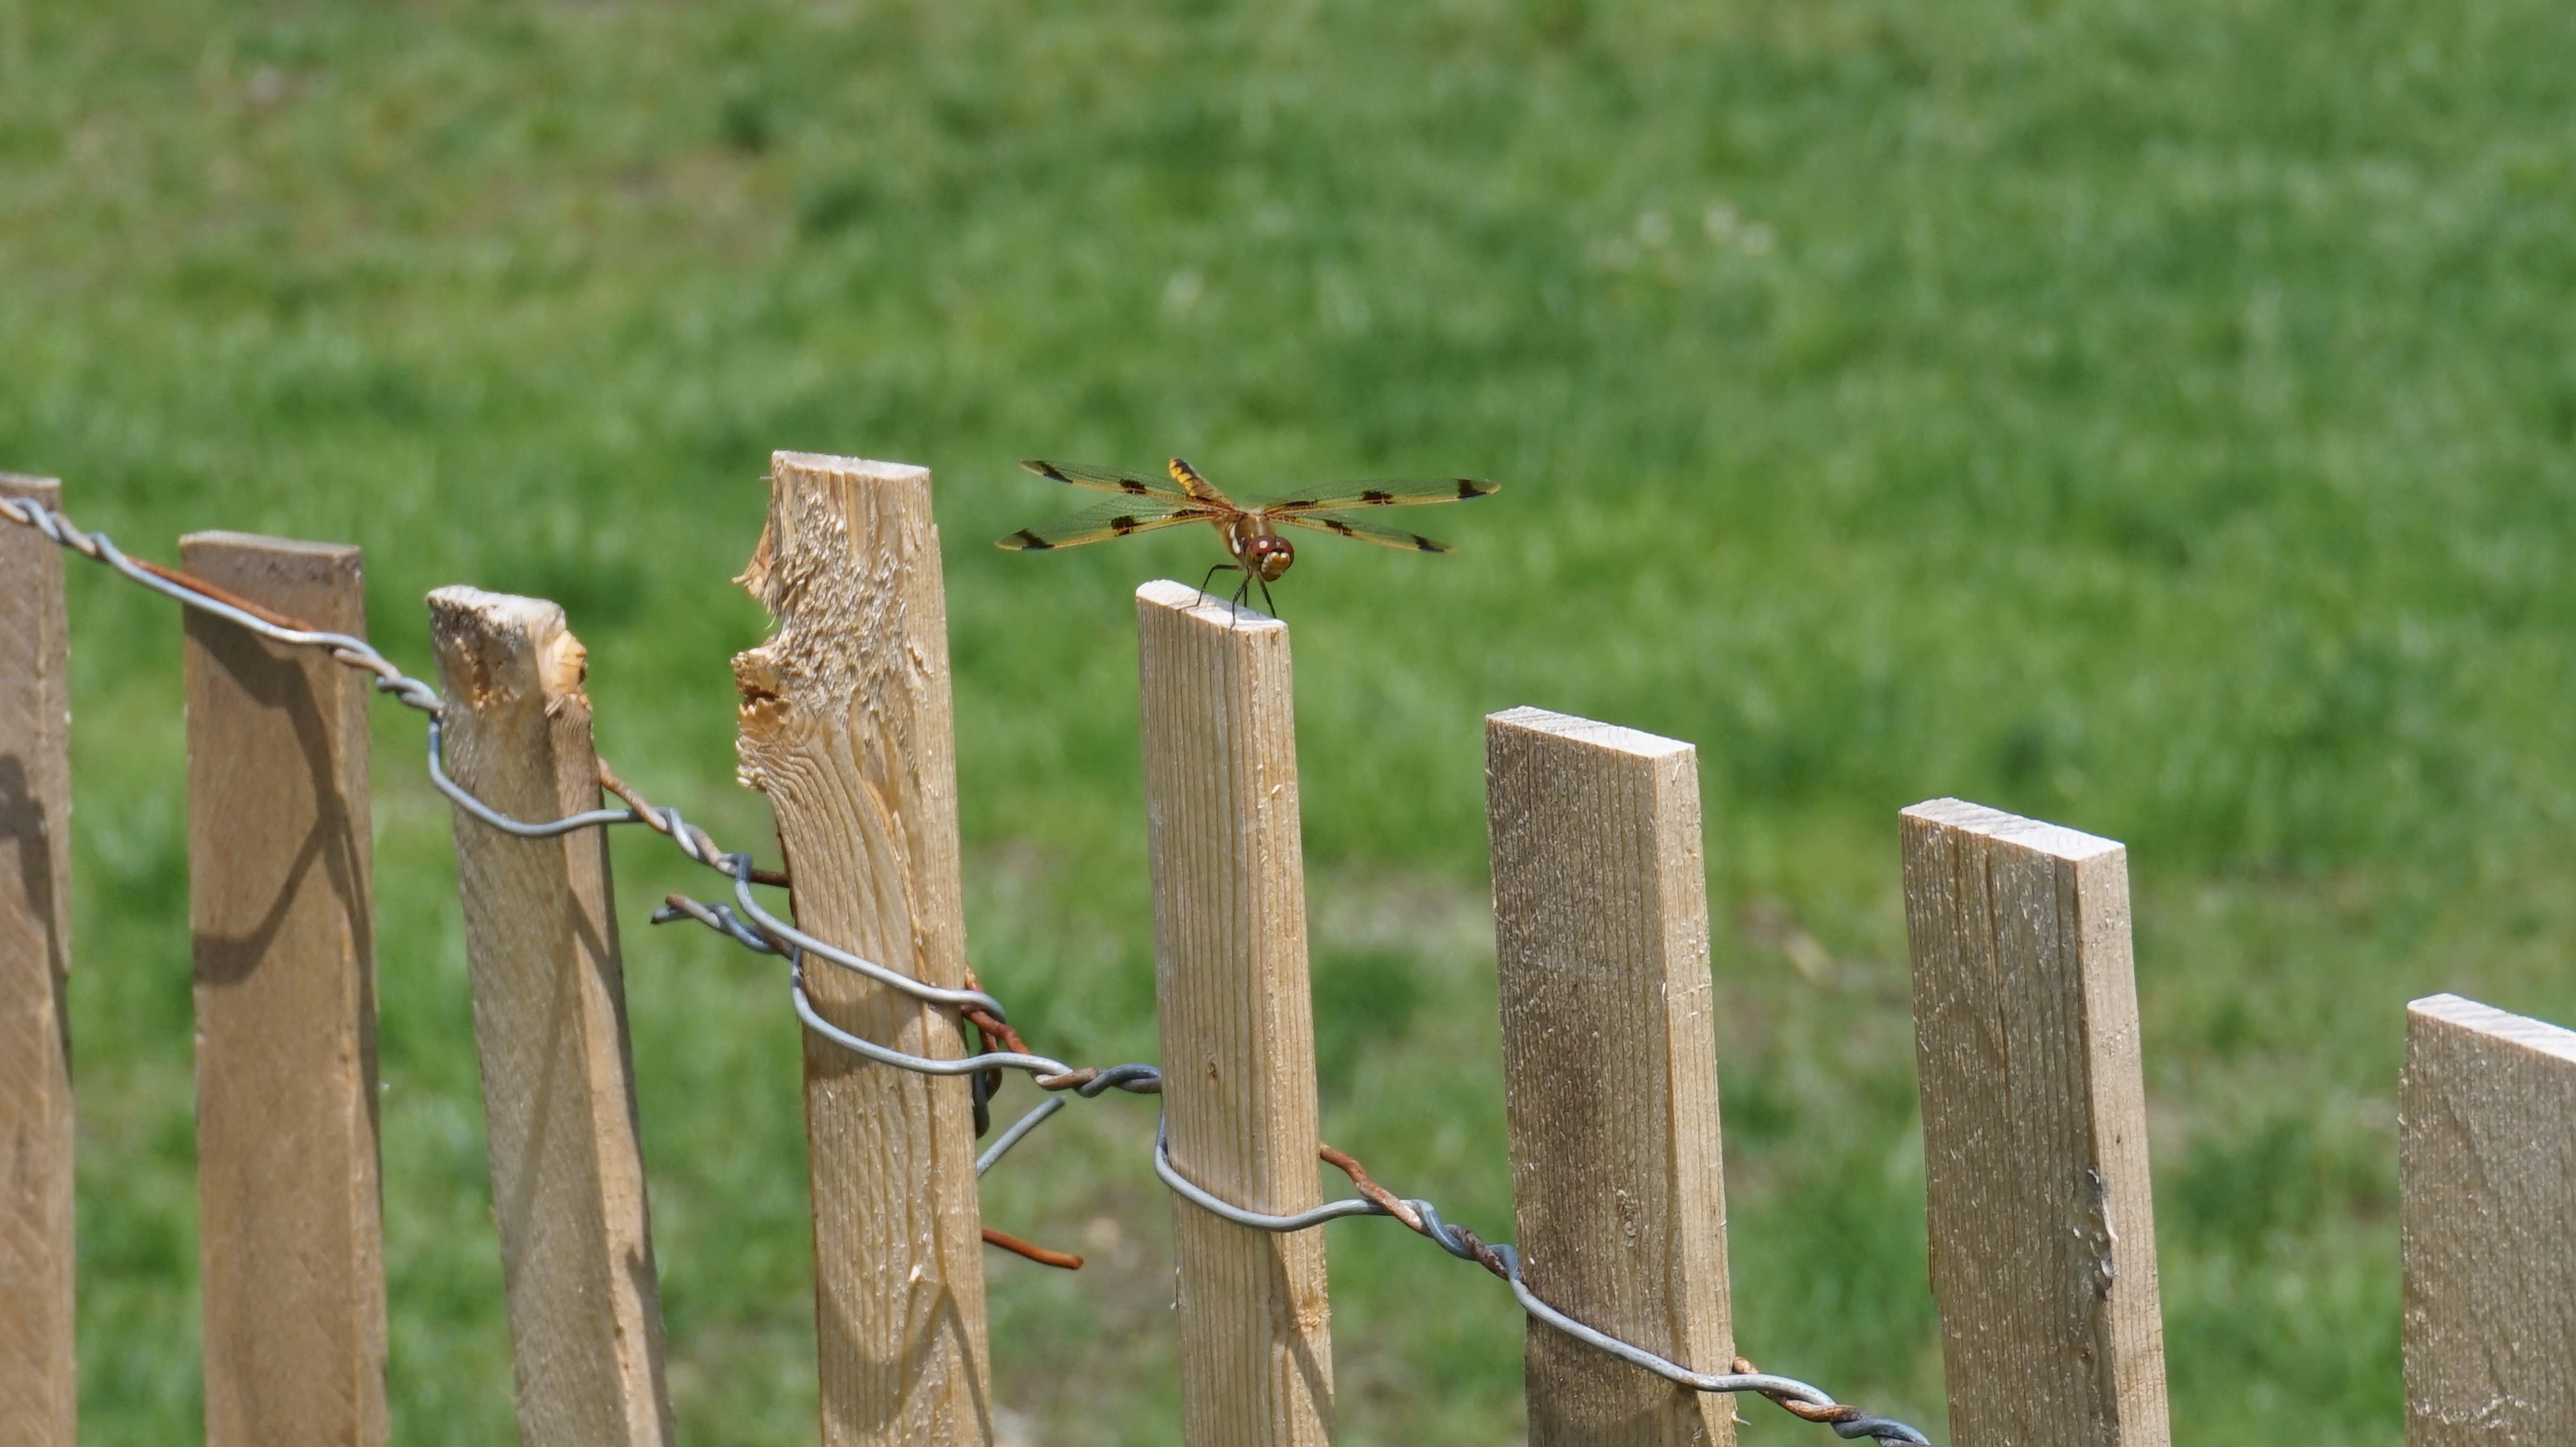 dragonfly on wood post low